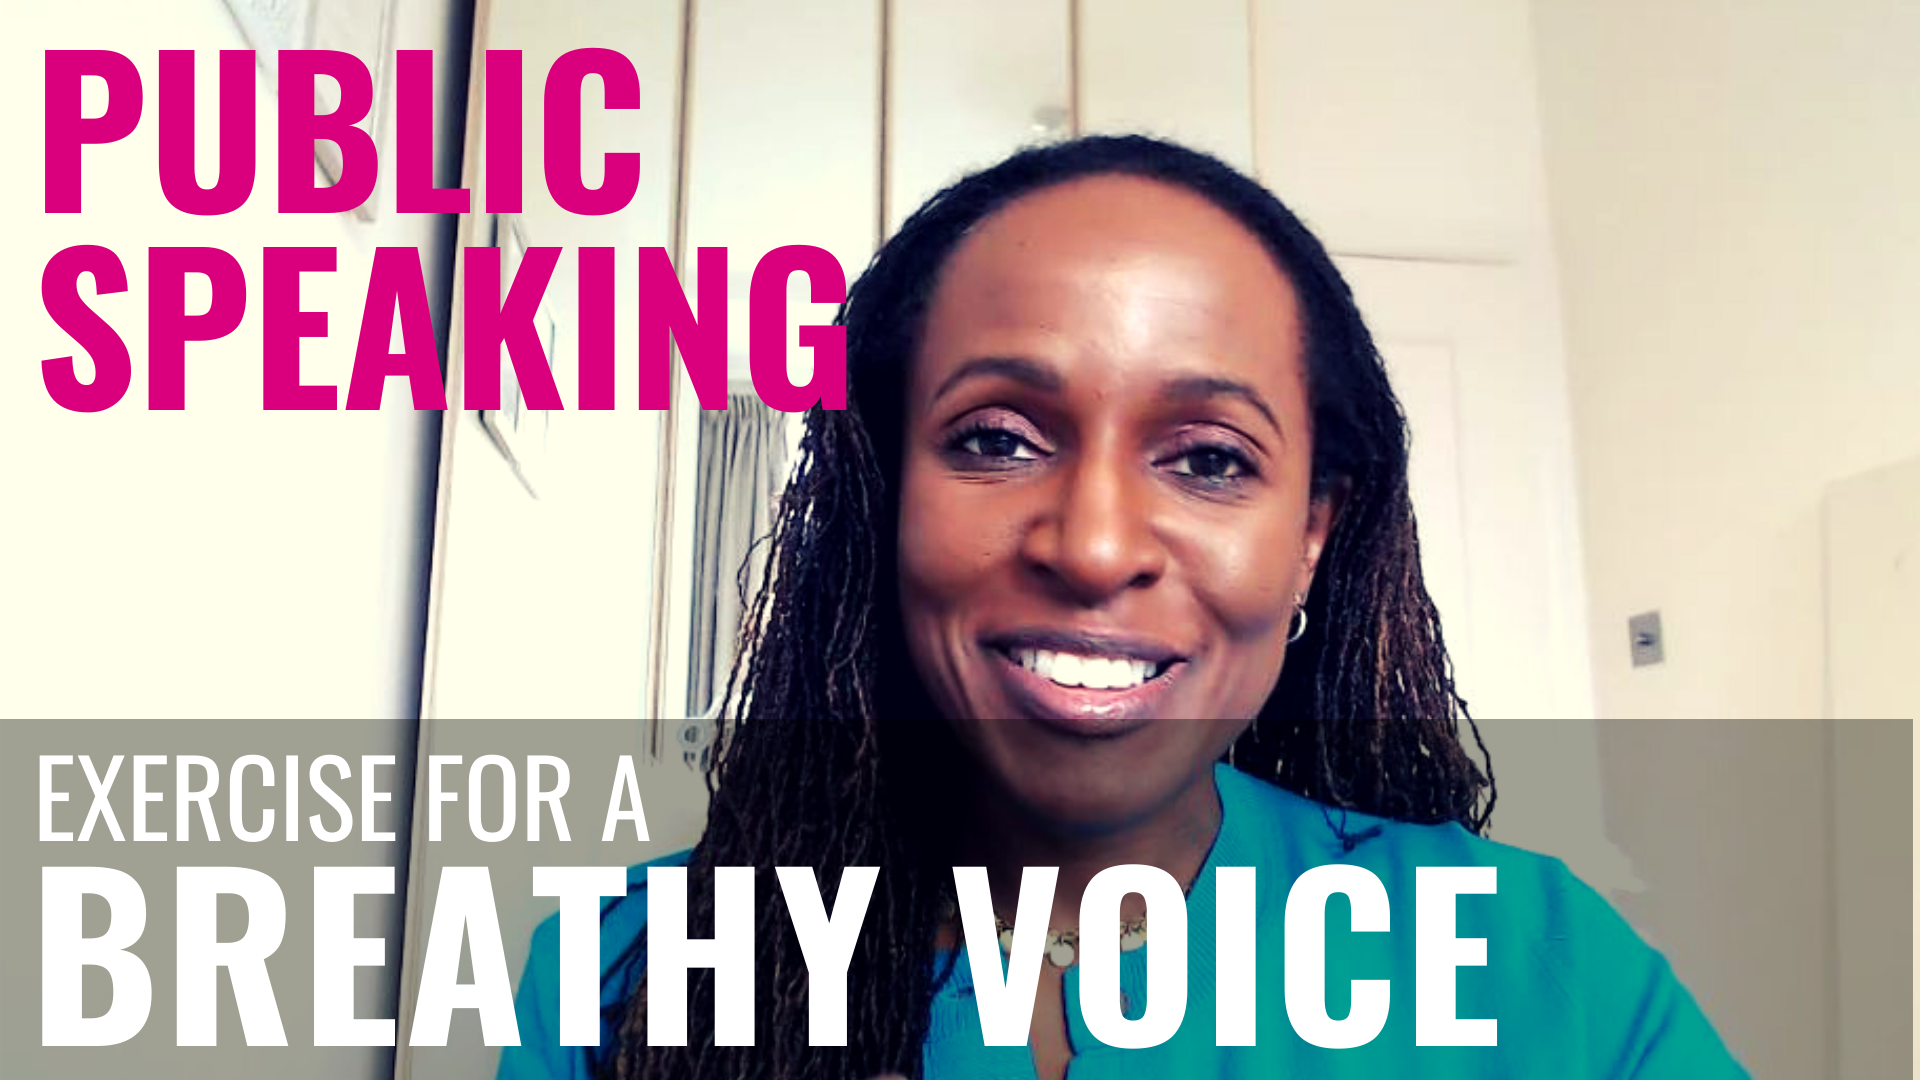 PUBLIC SPEAKING – Exercise for a BREATHY VOICE